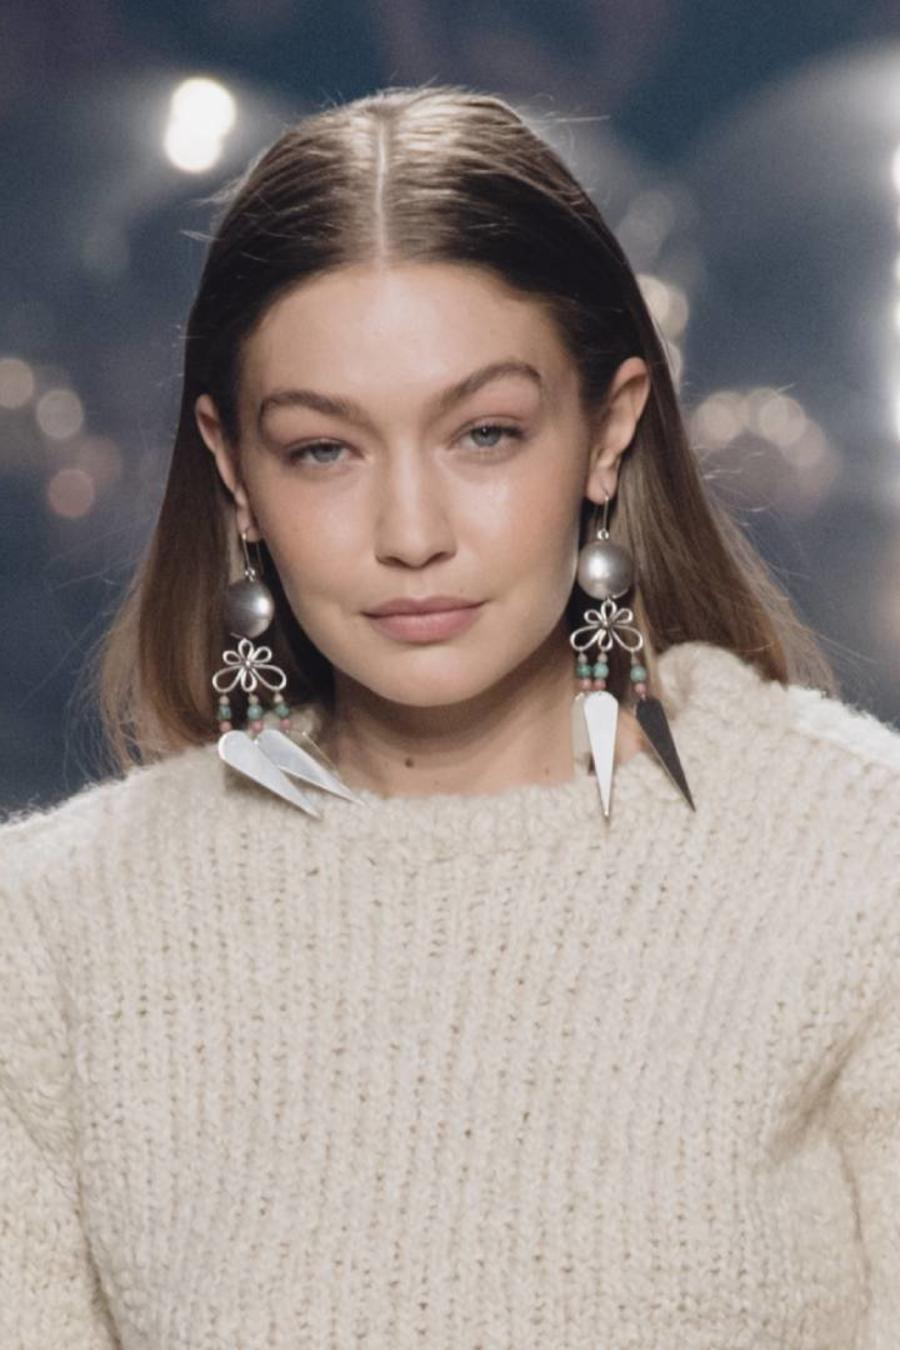 Gigi Hadid Paris, France 2021